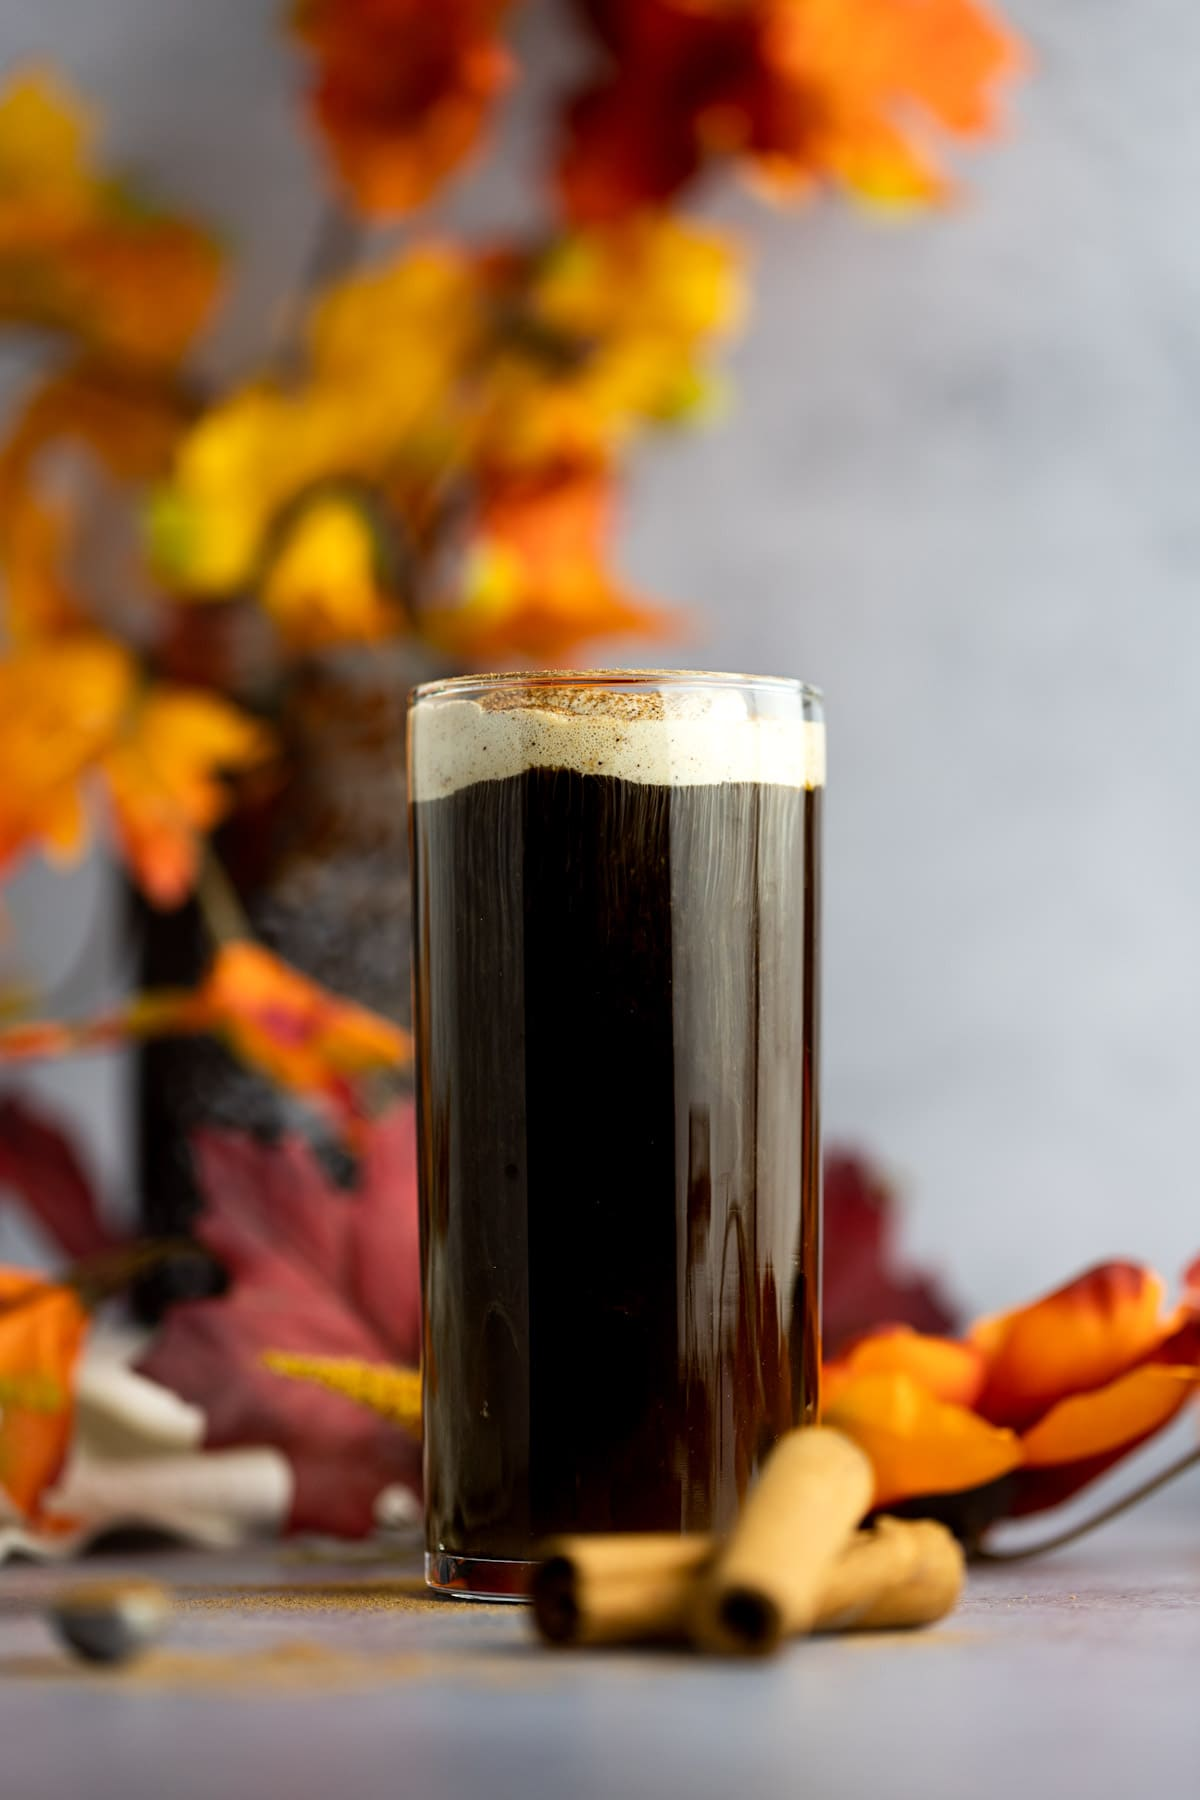 A tall glass of coffee topped with pumpkin foam, with cinnamon sticks beside it and leaves in the background.